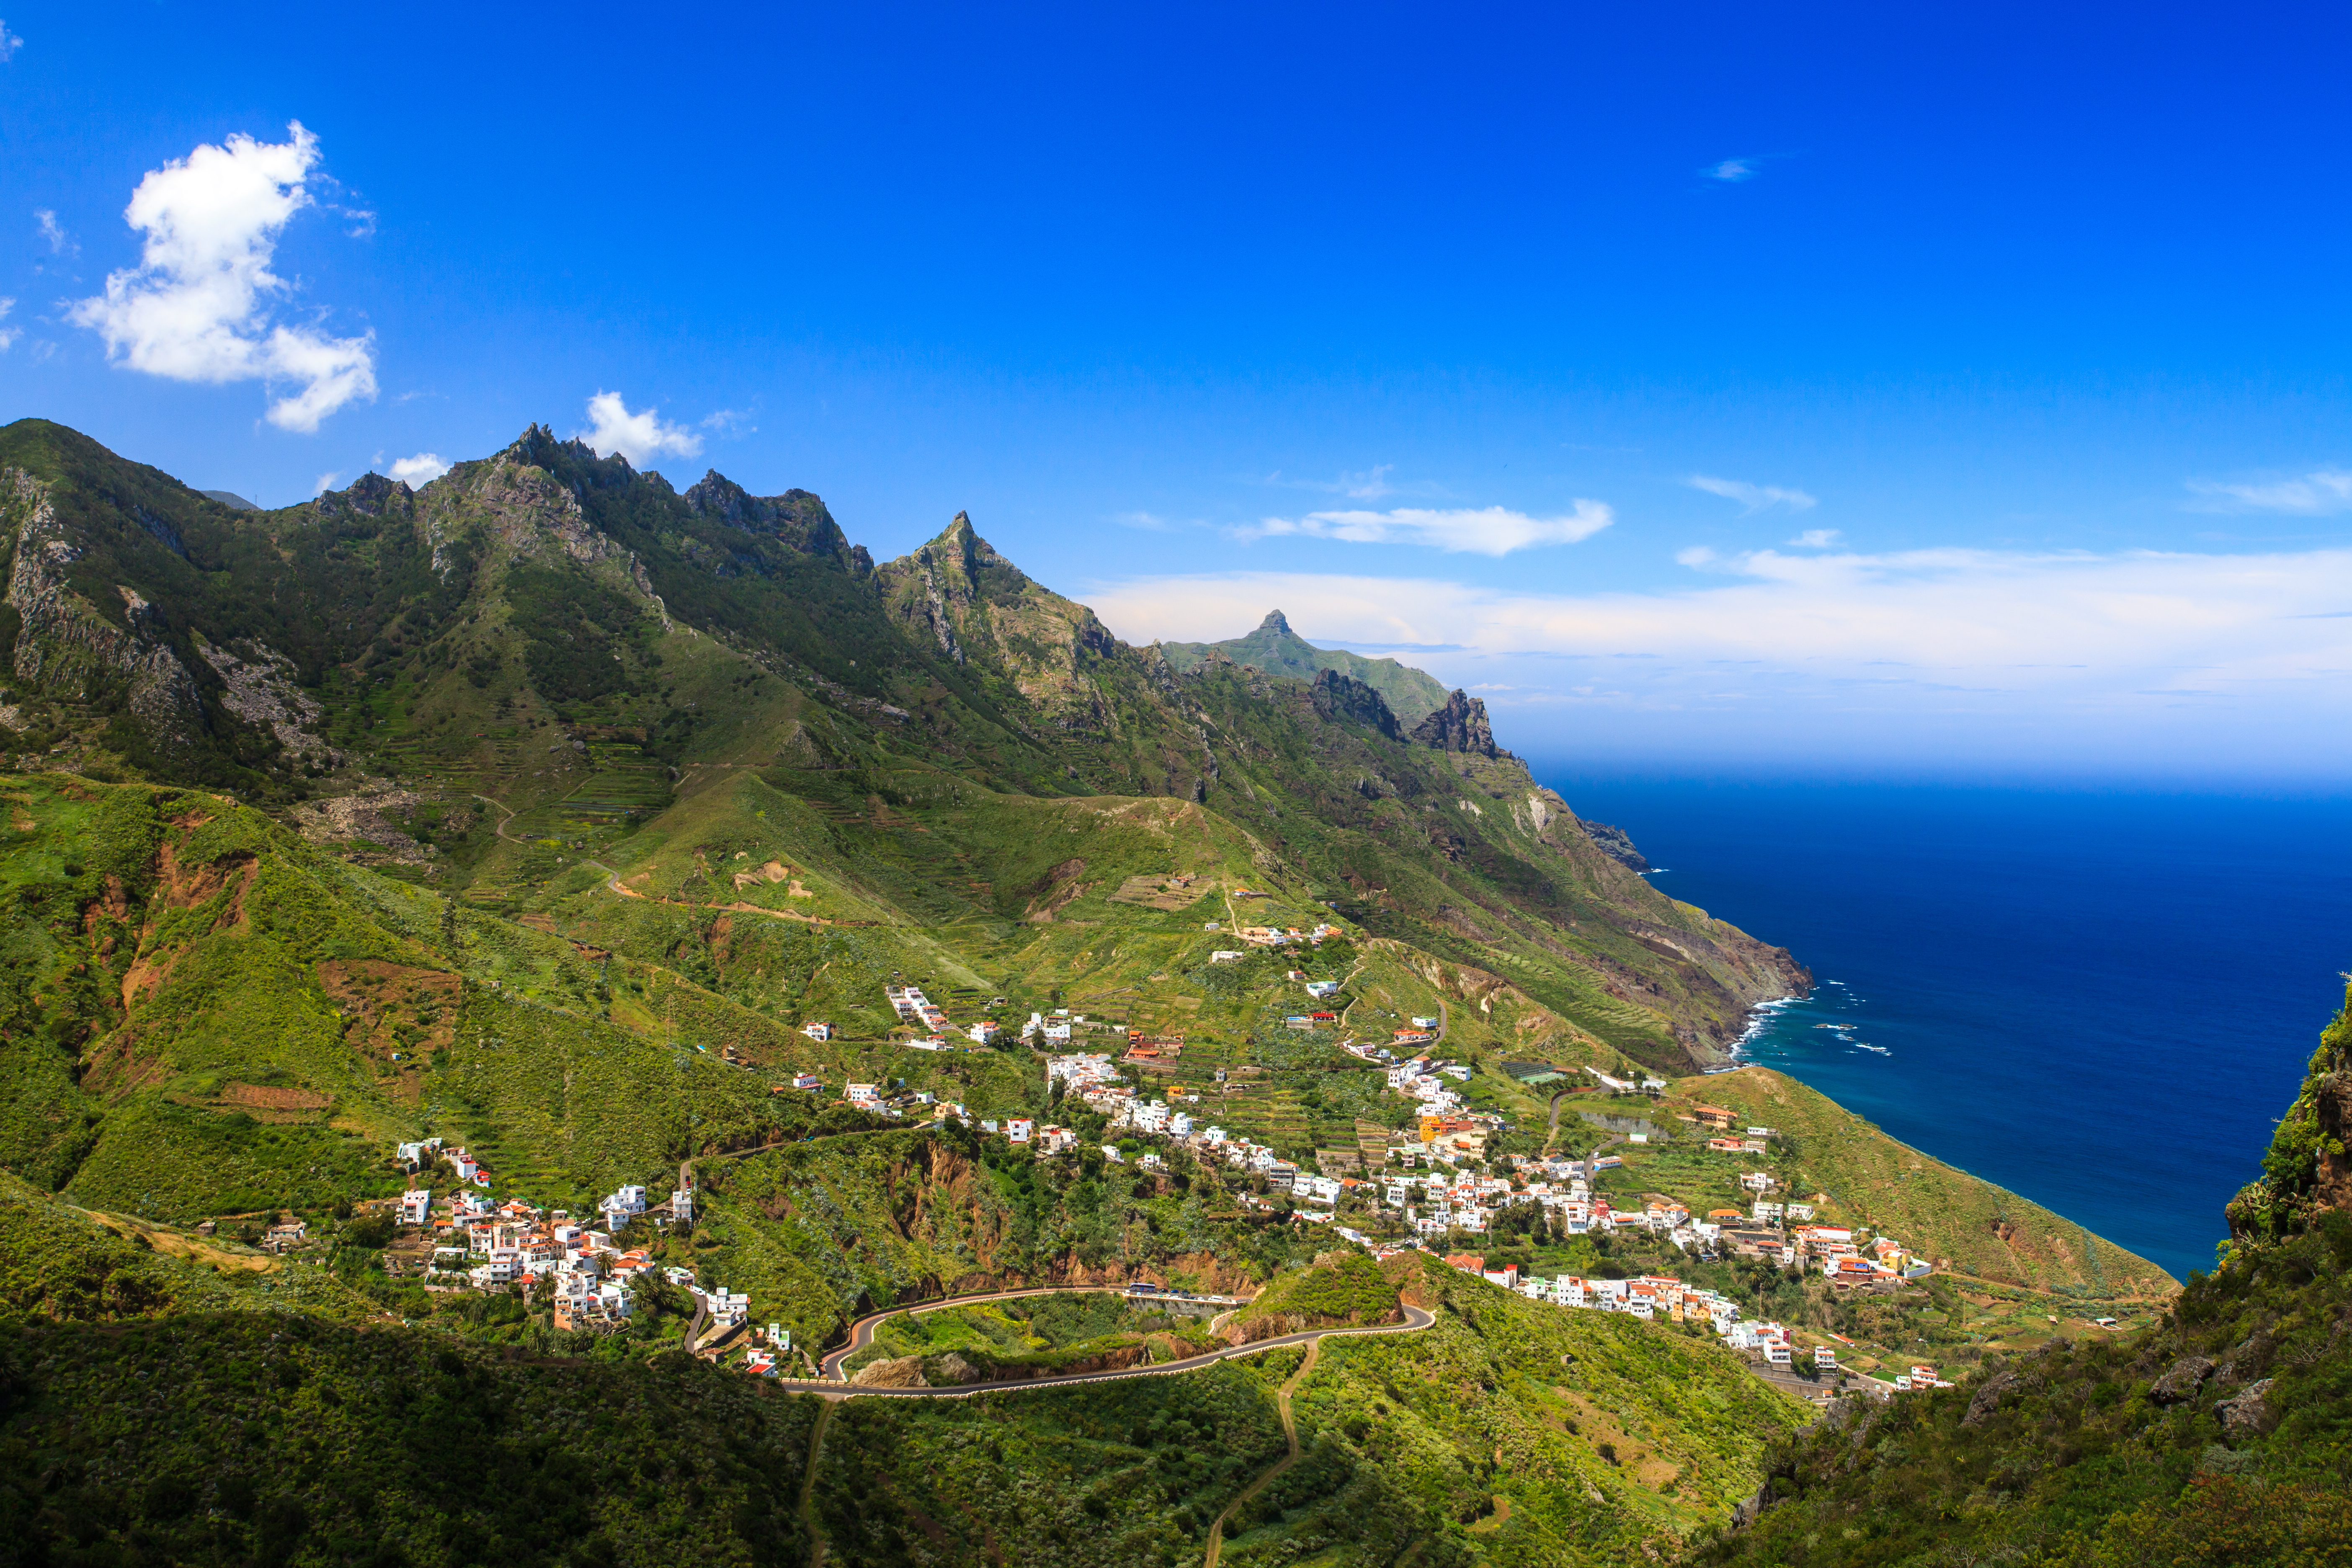 Property for sale in Tenerife - 3,959 properties